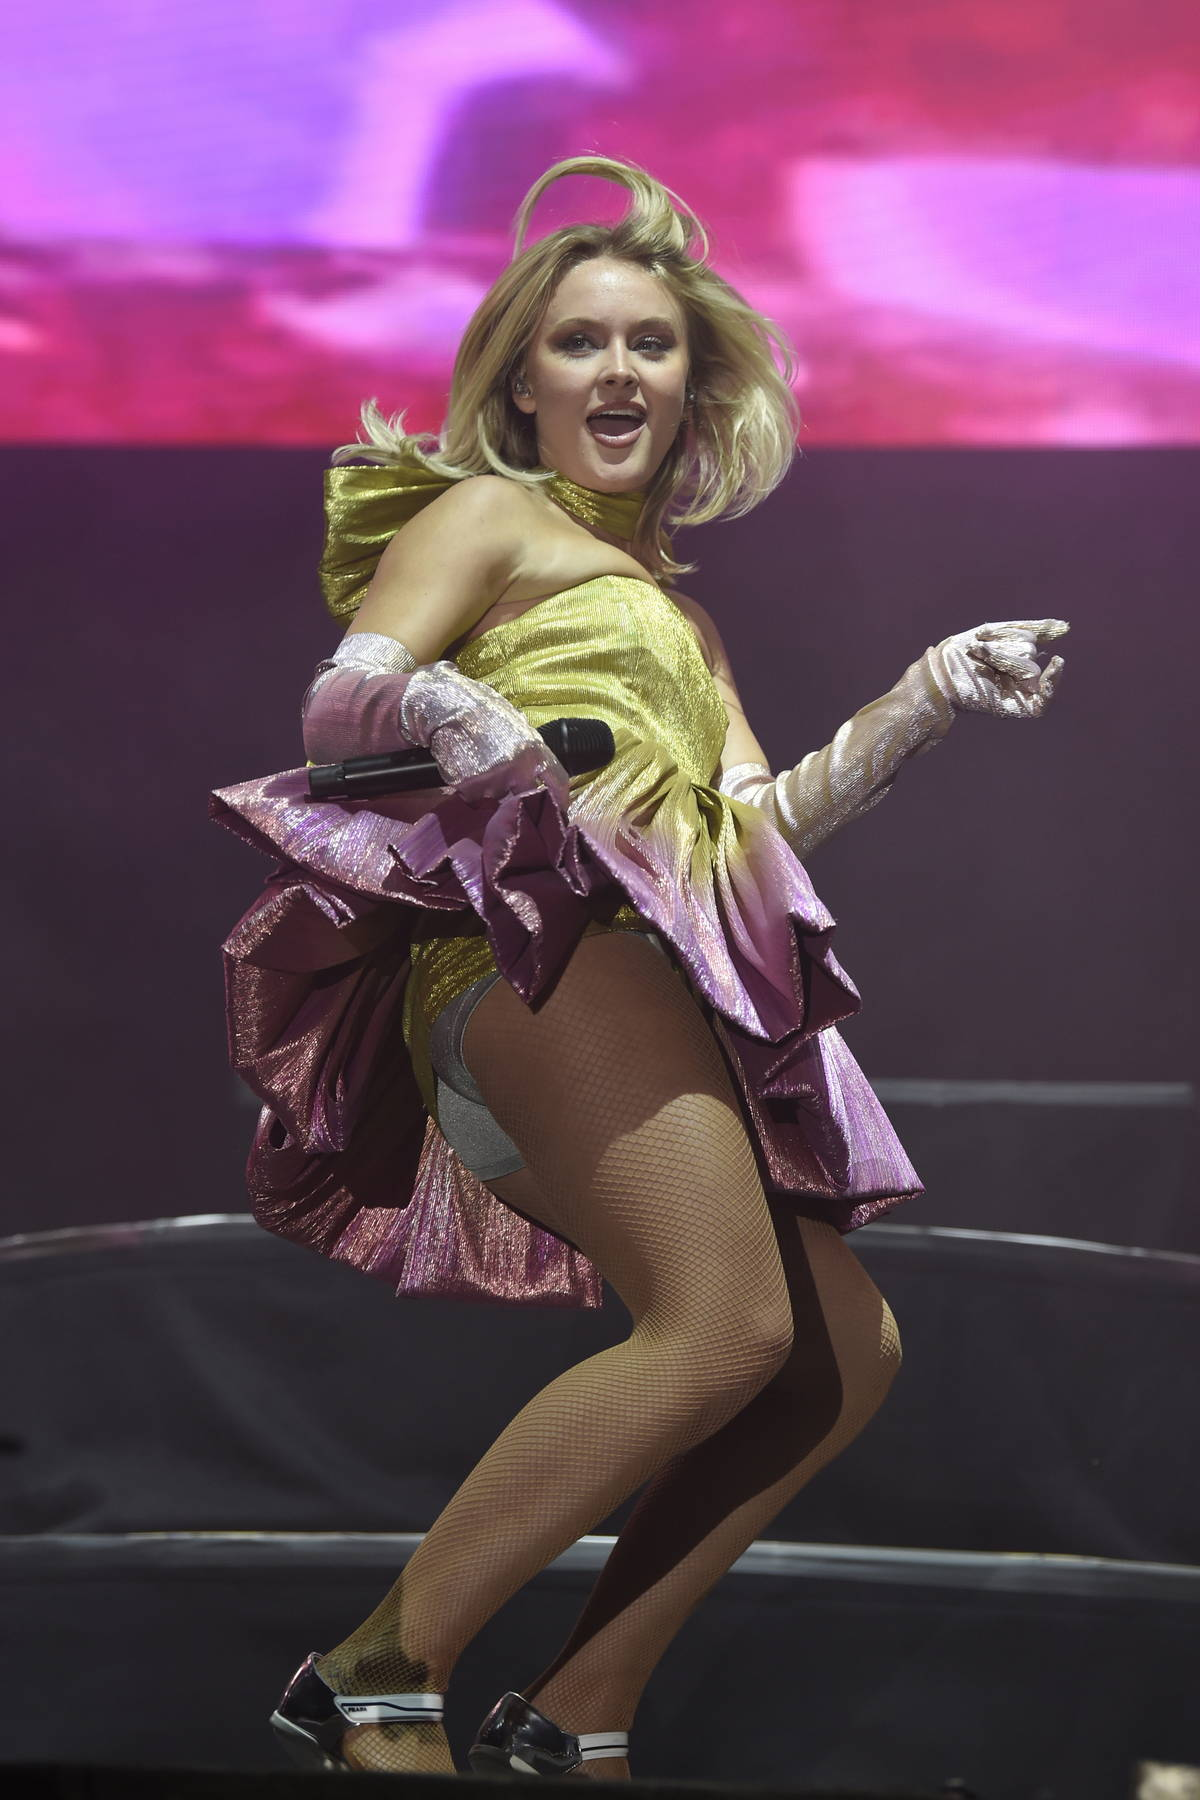 Zara Larsson performs live onstage at Manchester Pride in Manchester, UK